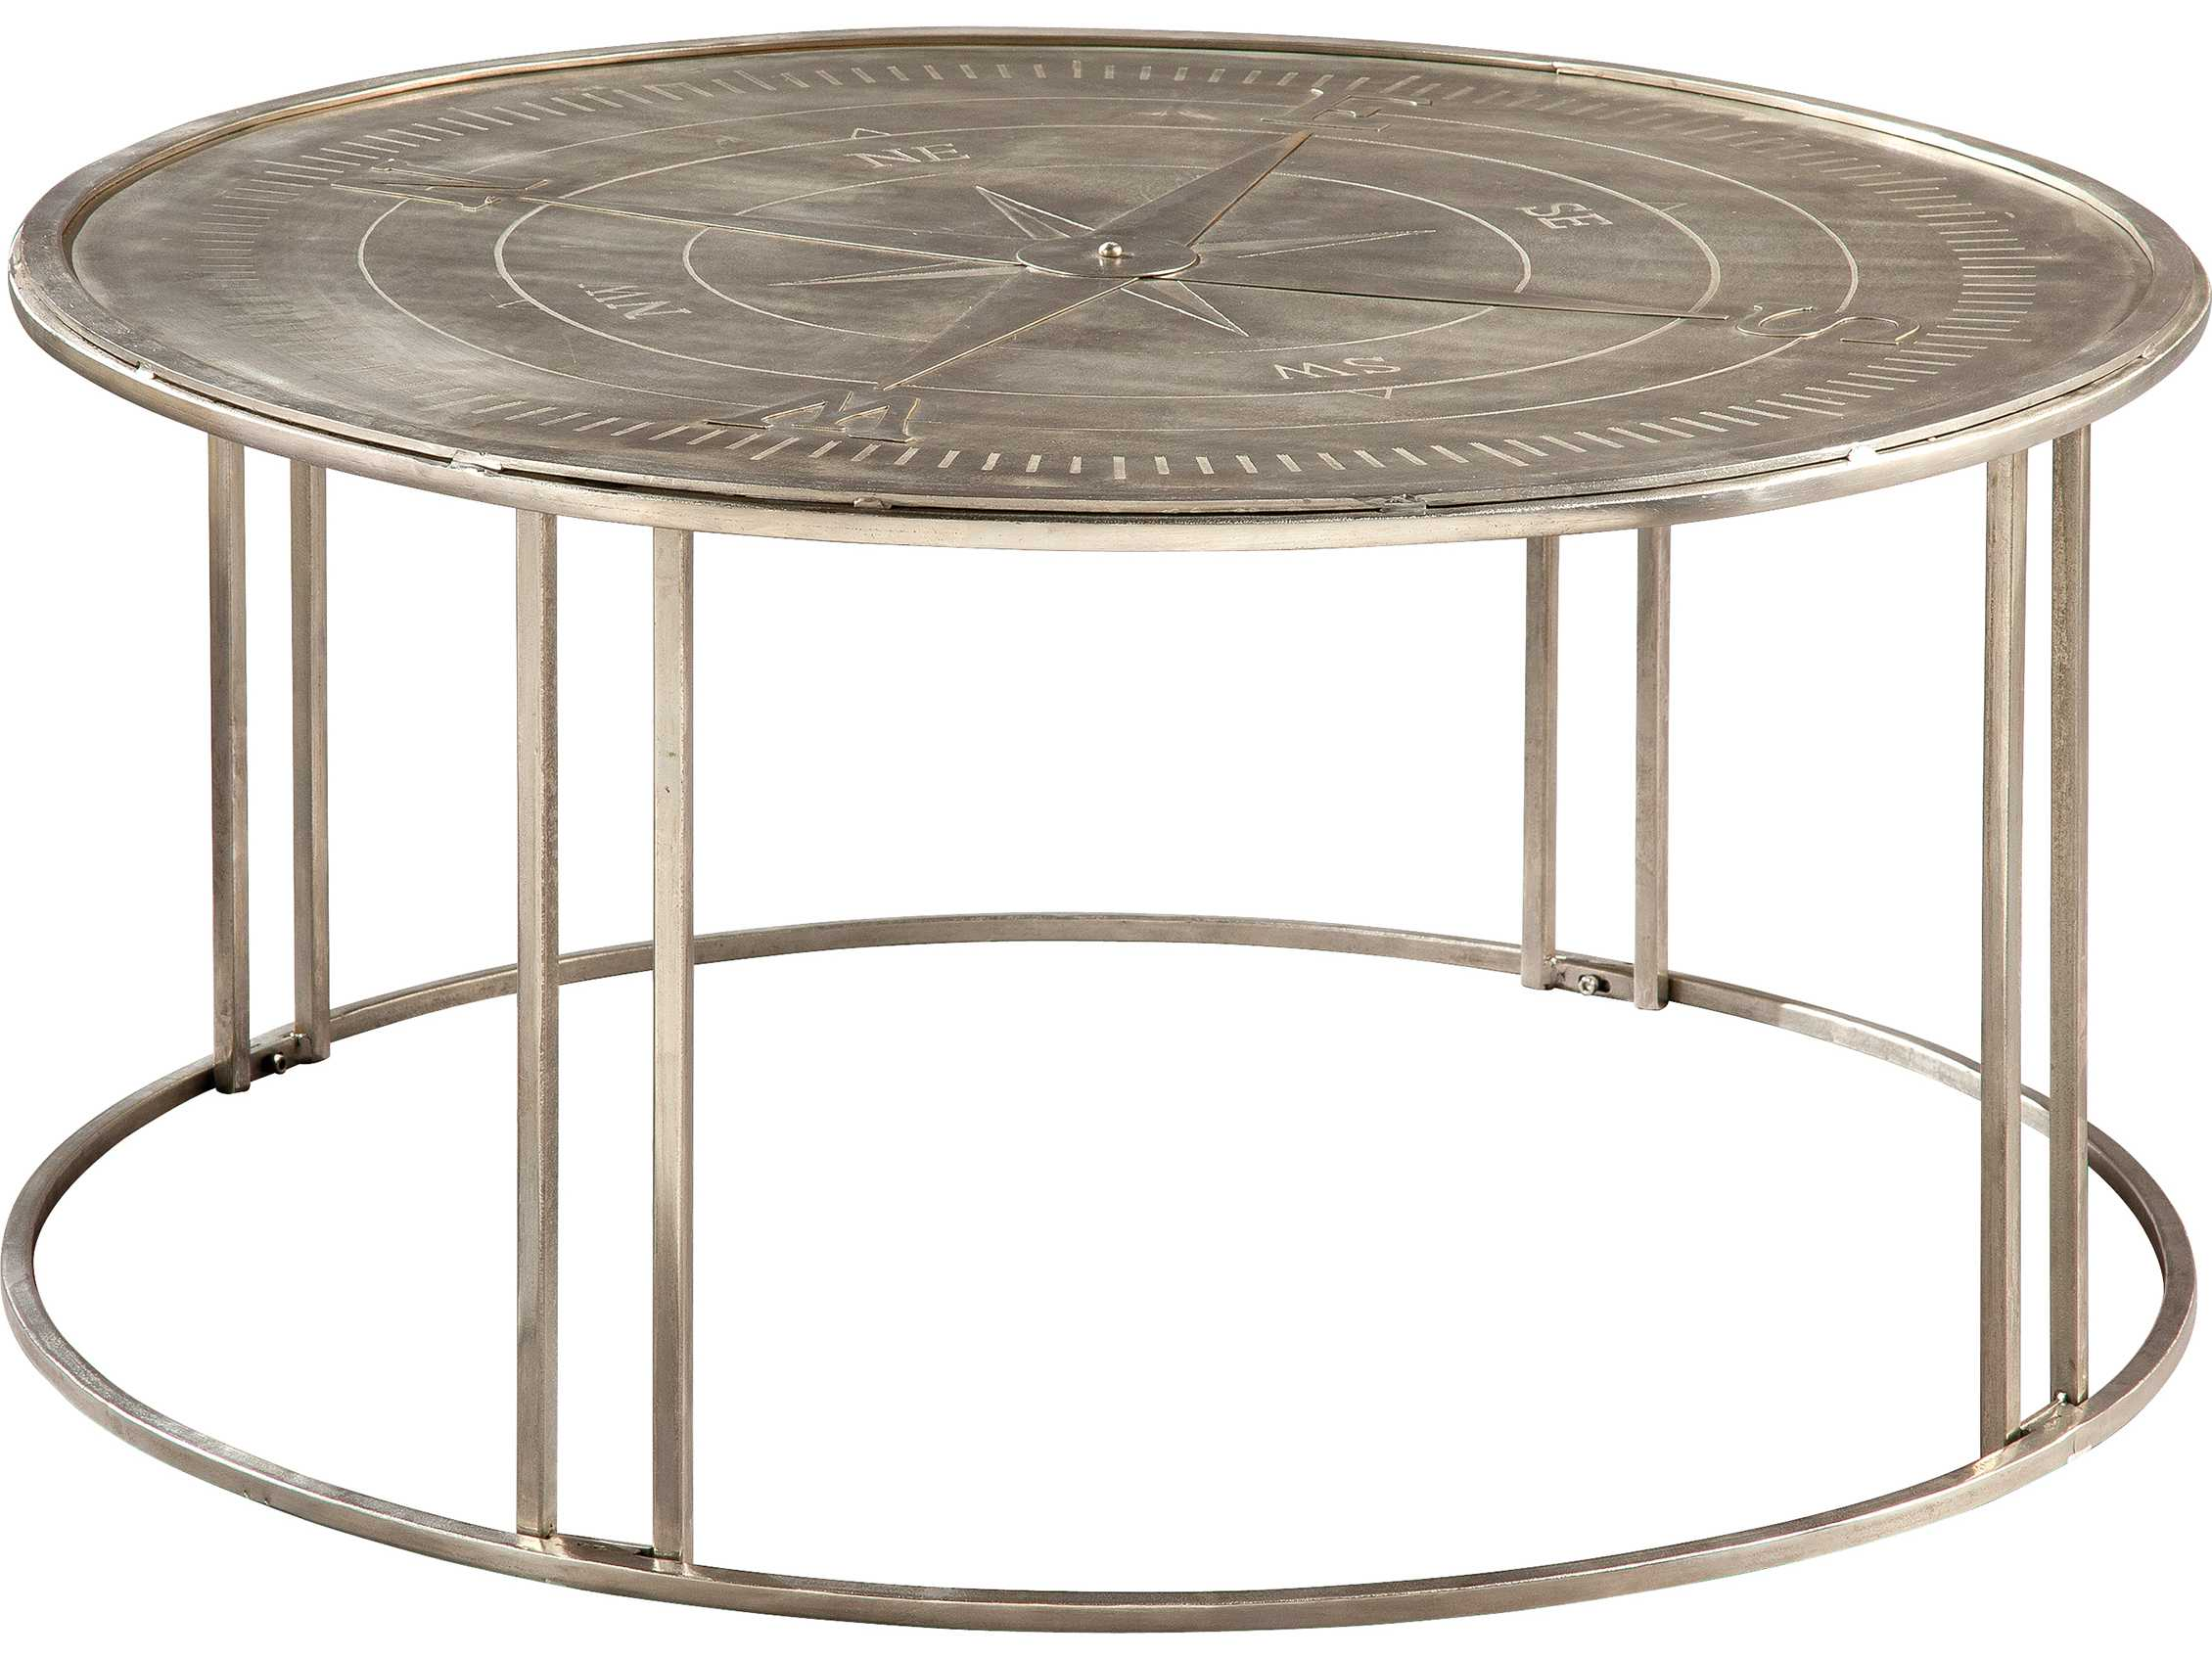 Hekman Accents Compass Coffee Table Hk27314